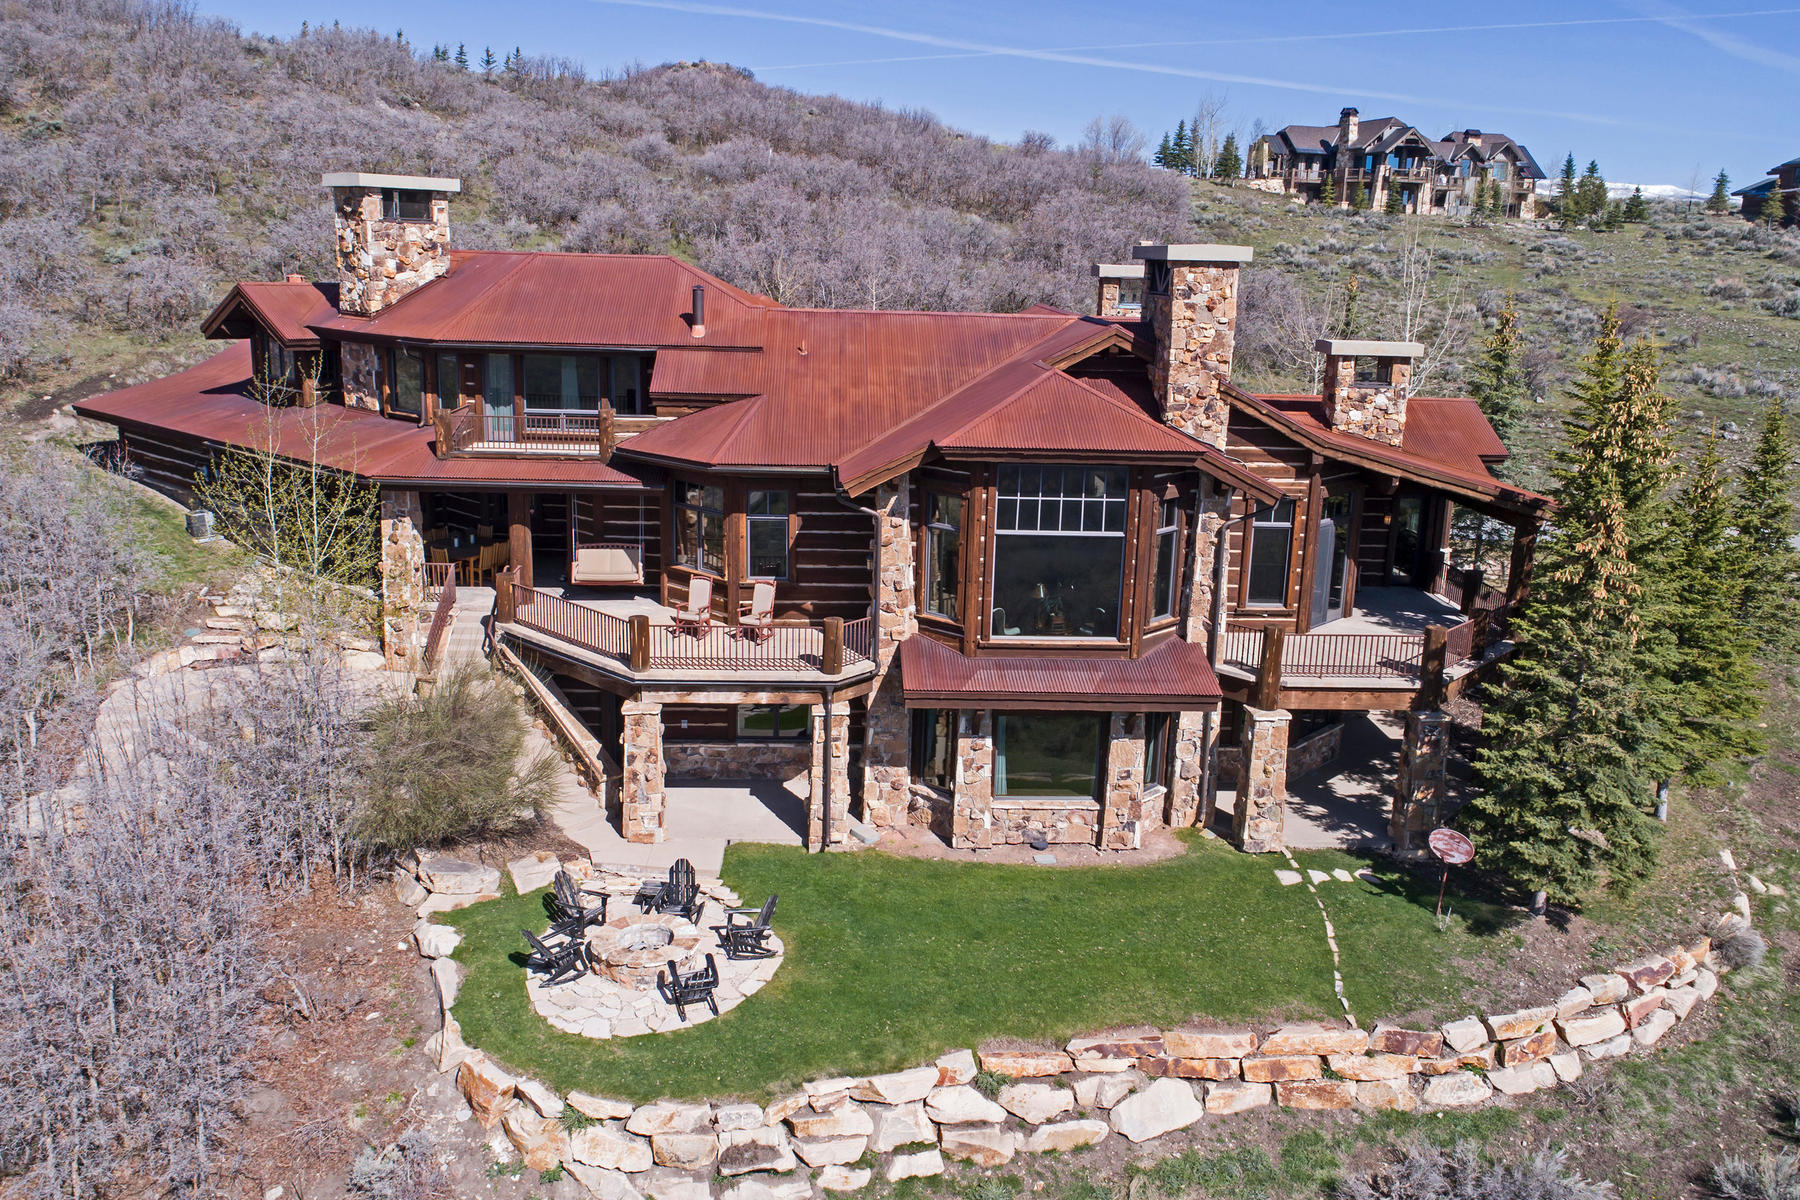 一戸建て のために 売買 アット Elegant Promontory Masterpiece in a Private Location with Direct Views of Uintas 8437 N Sunrise Lp Park City, ユタ, 84098 アメリカ合衆国